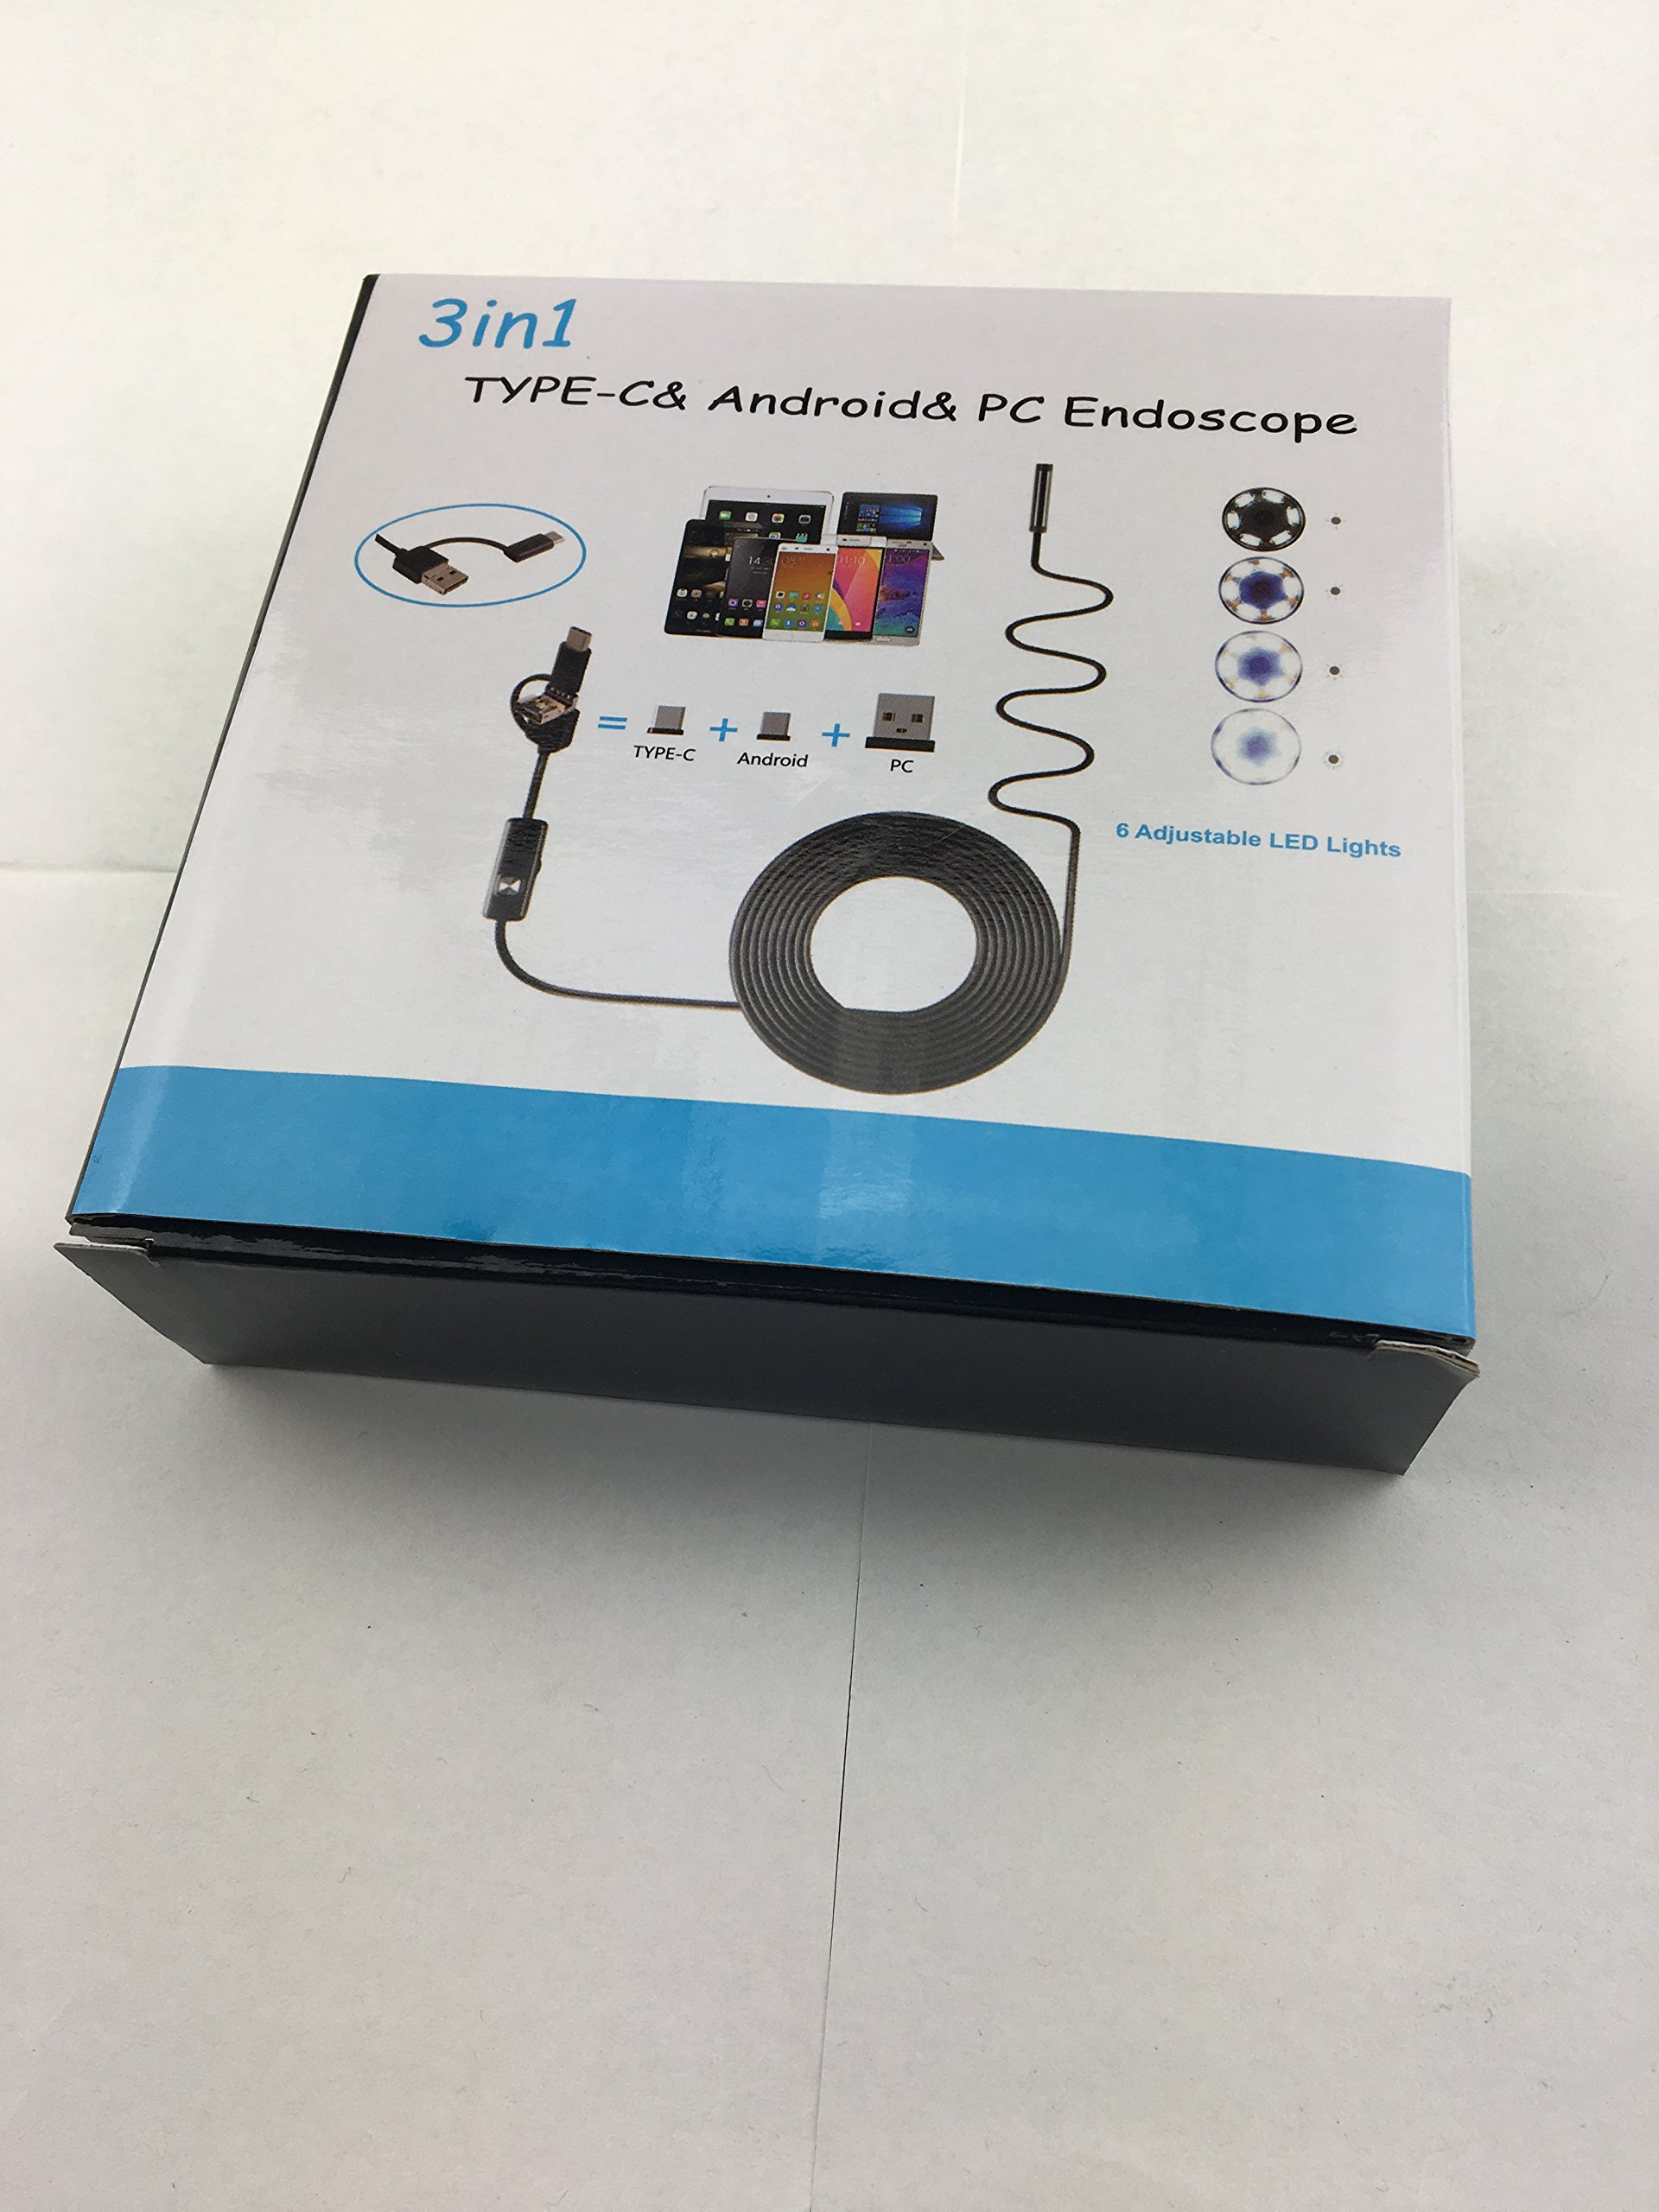 3 in 1 Endoscope by Dr.ja